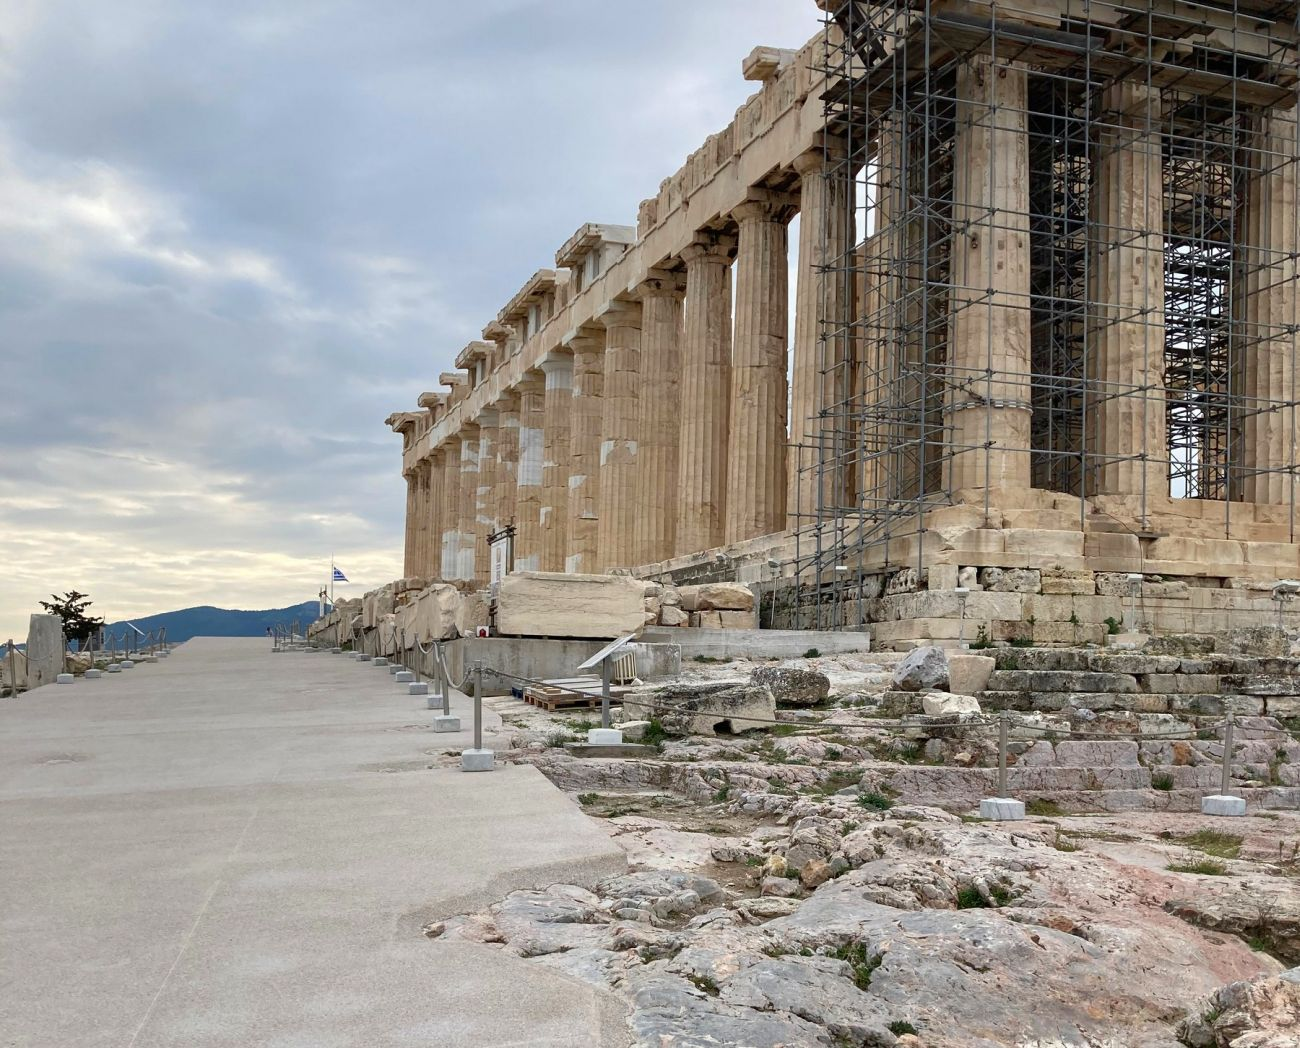 A new pathway leading to the Parthenon.